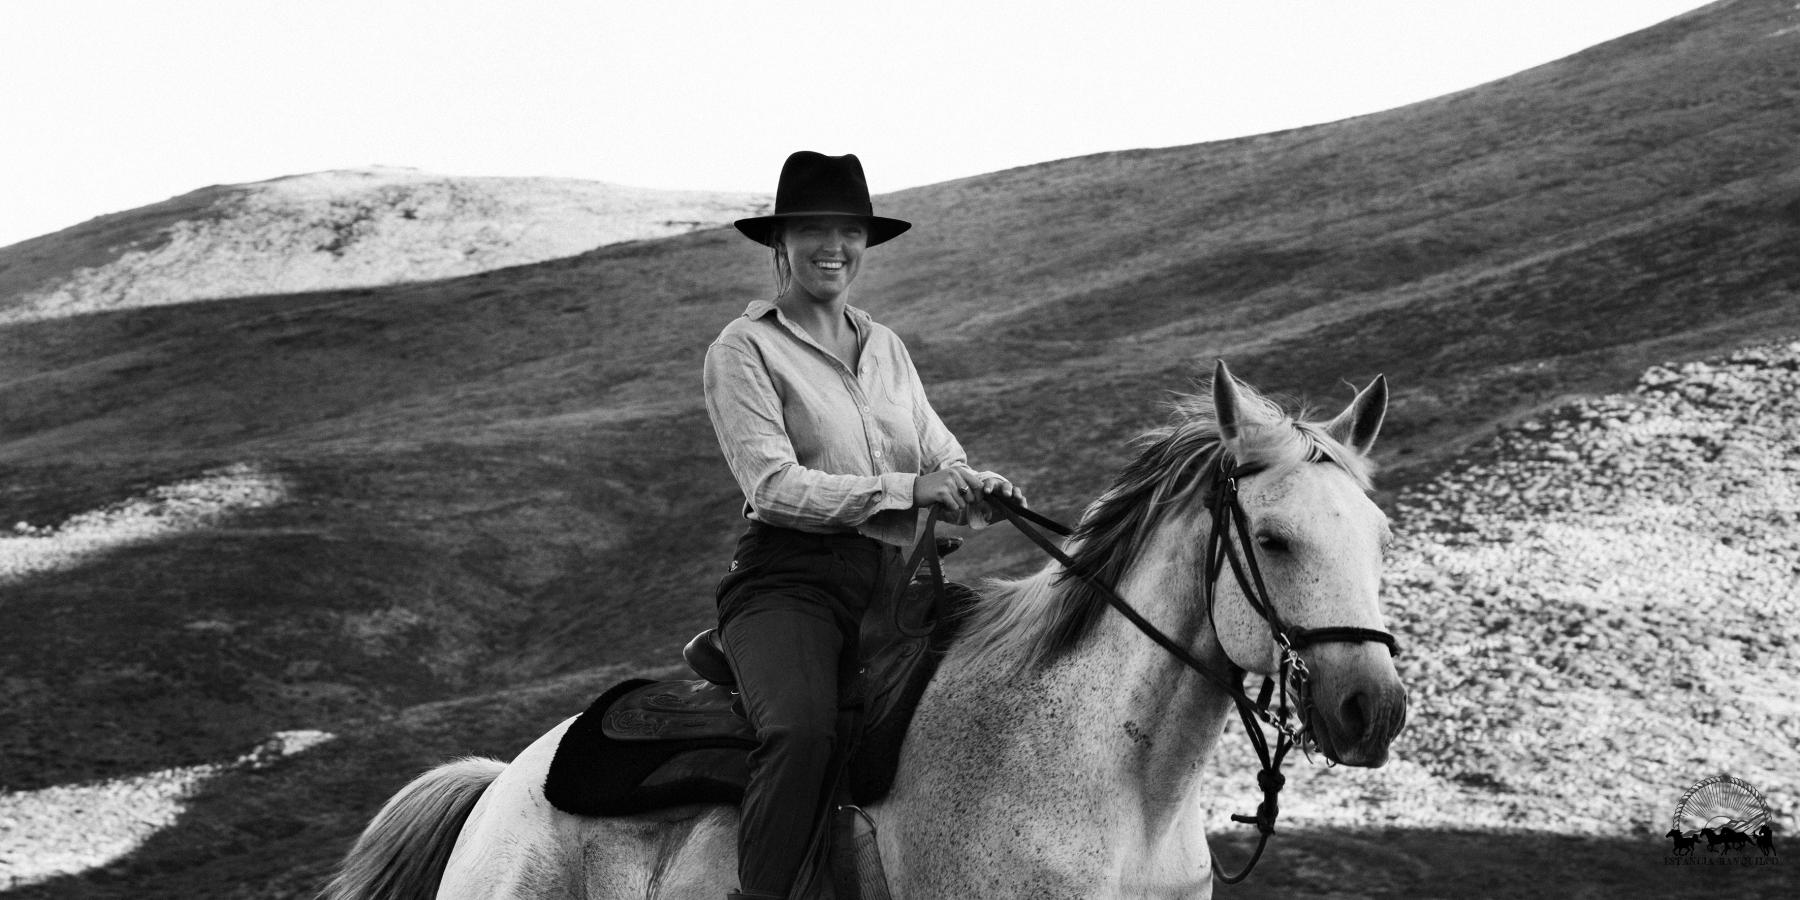 Black and white photo of woman riding criollo horse at Estancia Ranquilco in Patagonia Argentina